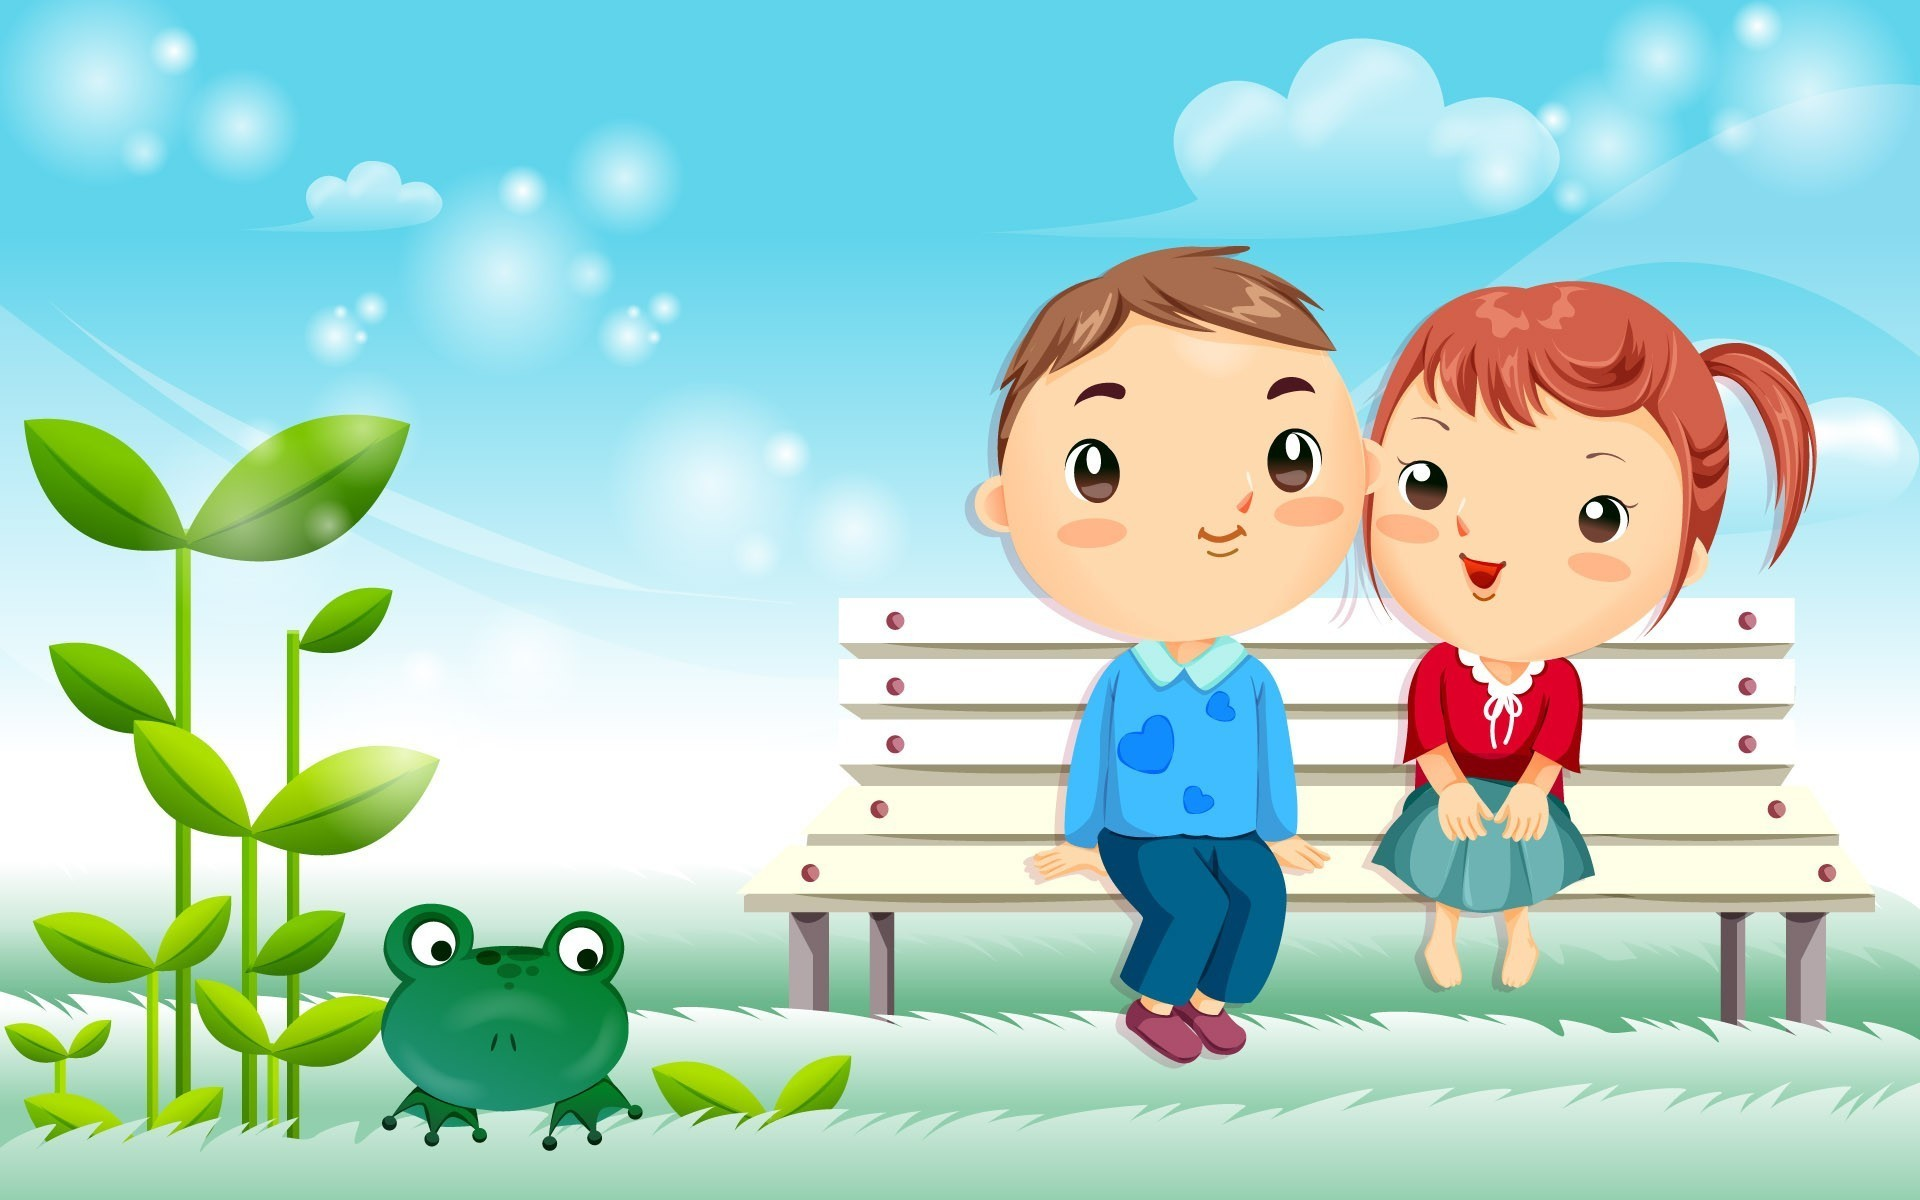 Wallpaper Of cute Love cartoon : Love cartoon Background - Wallpaper, High Definition, High Quality, Widescreen